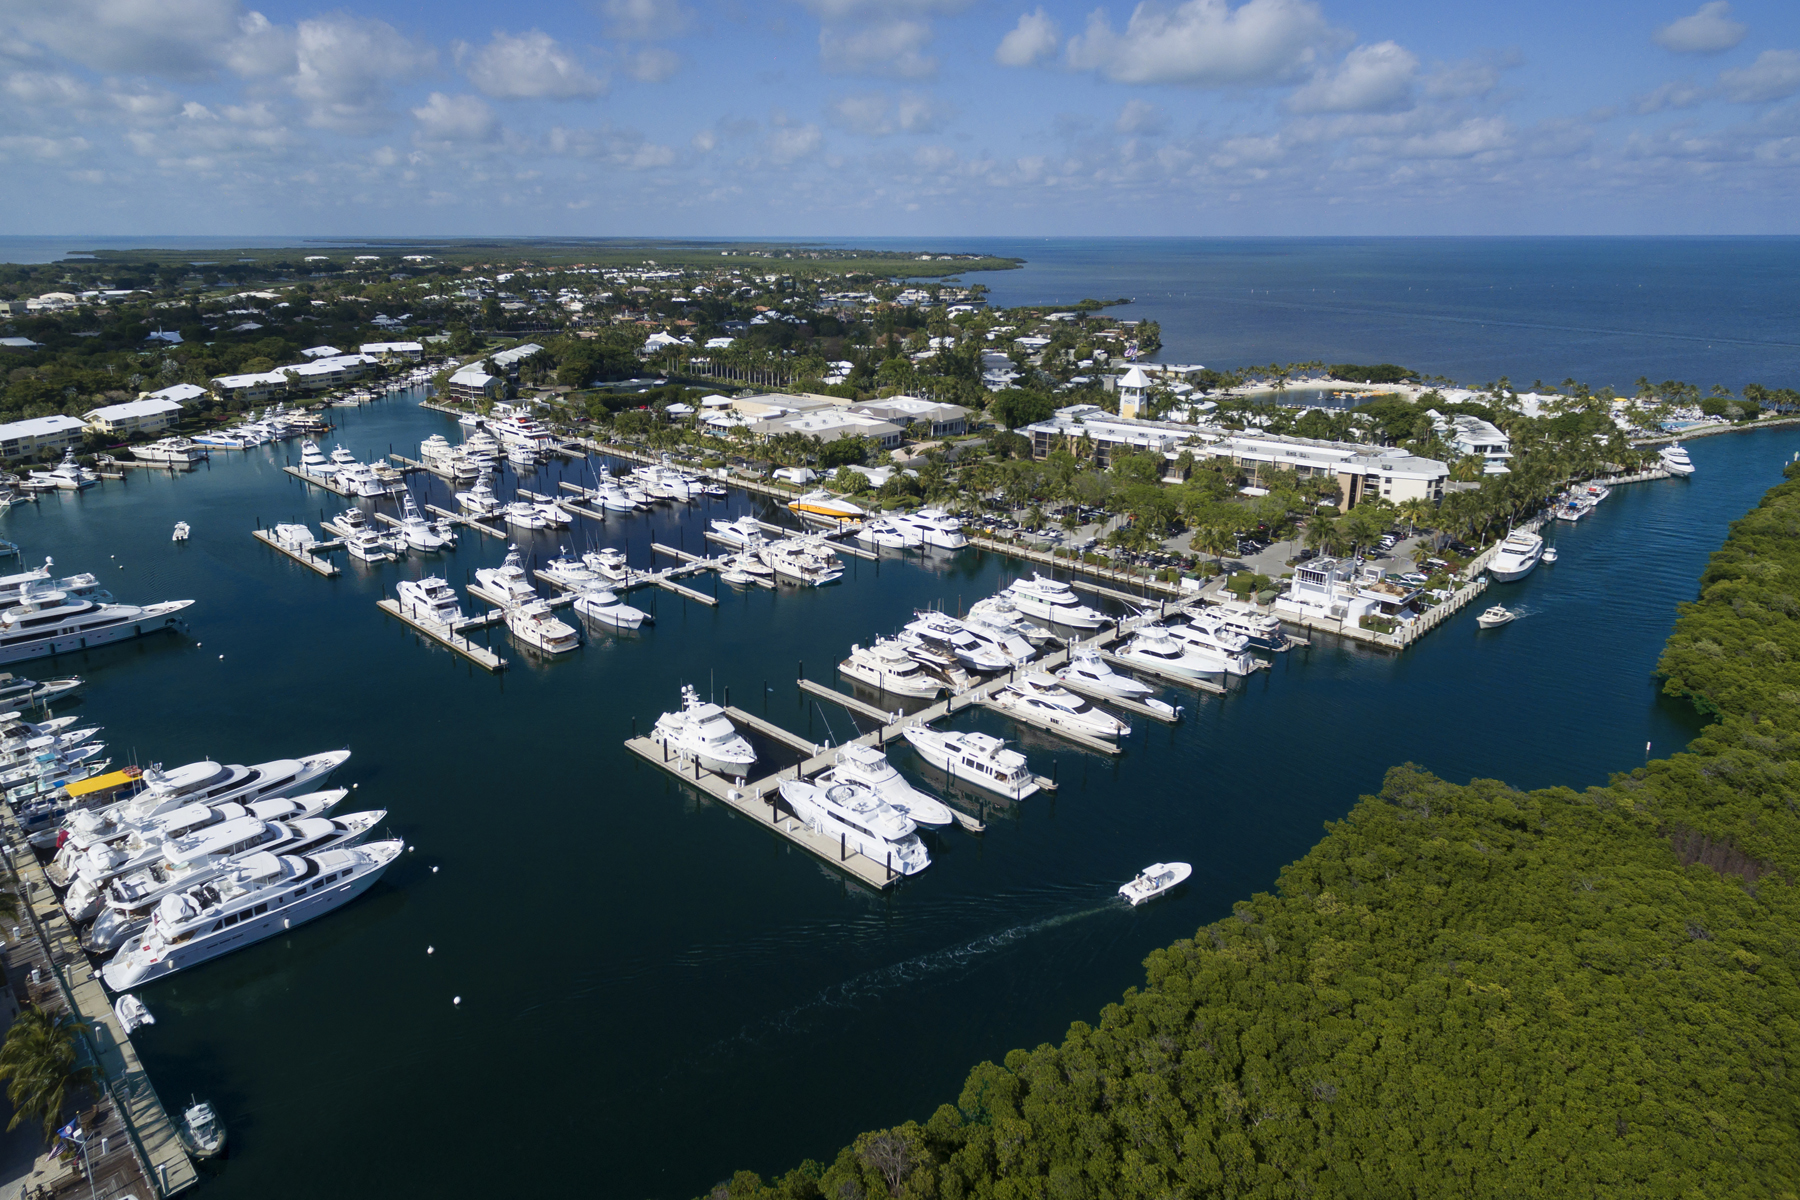 Ocean Reef Marina Offers Full Yacht Services 201 Ocean Reef Drive, ES-11 Key Largo, Florida 33037 United States